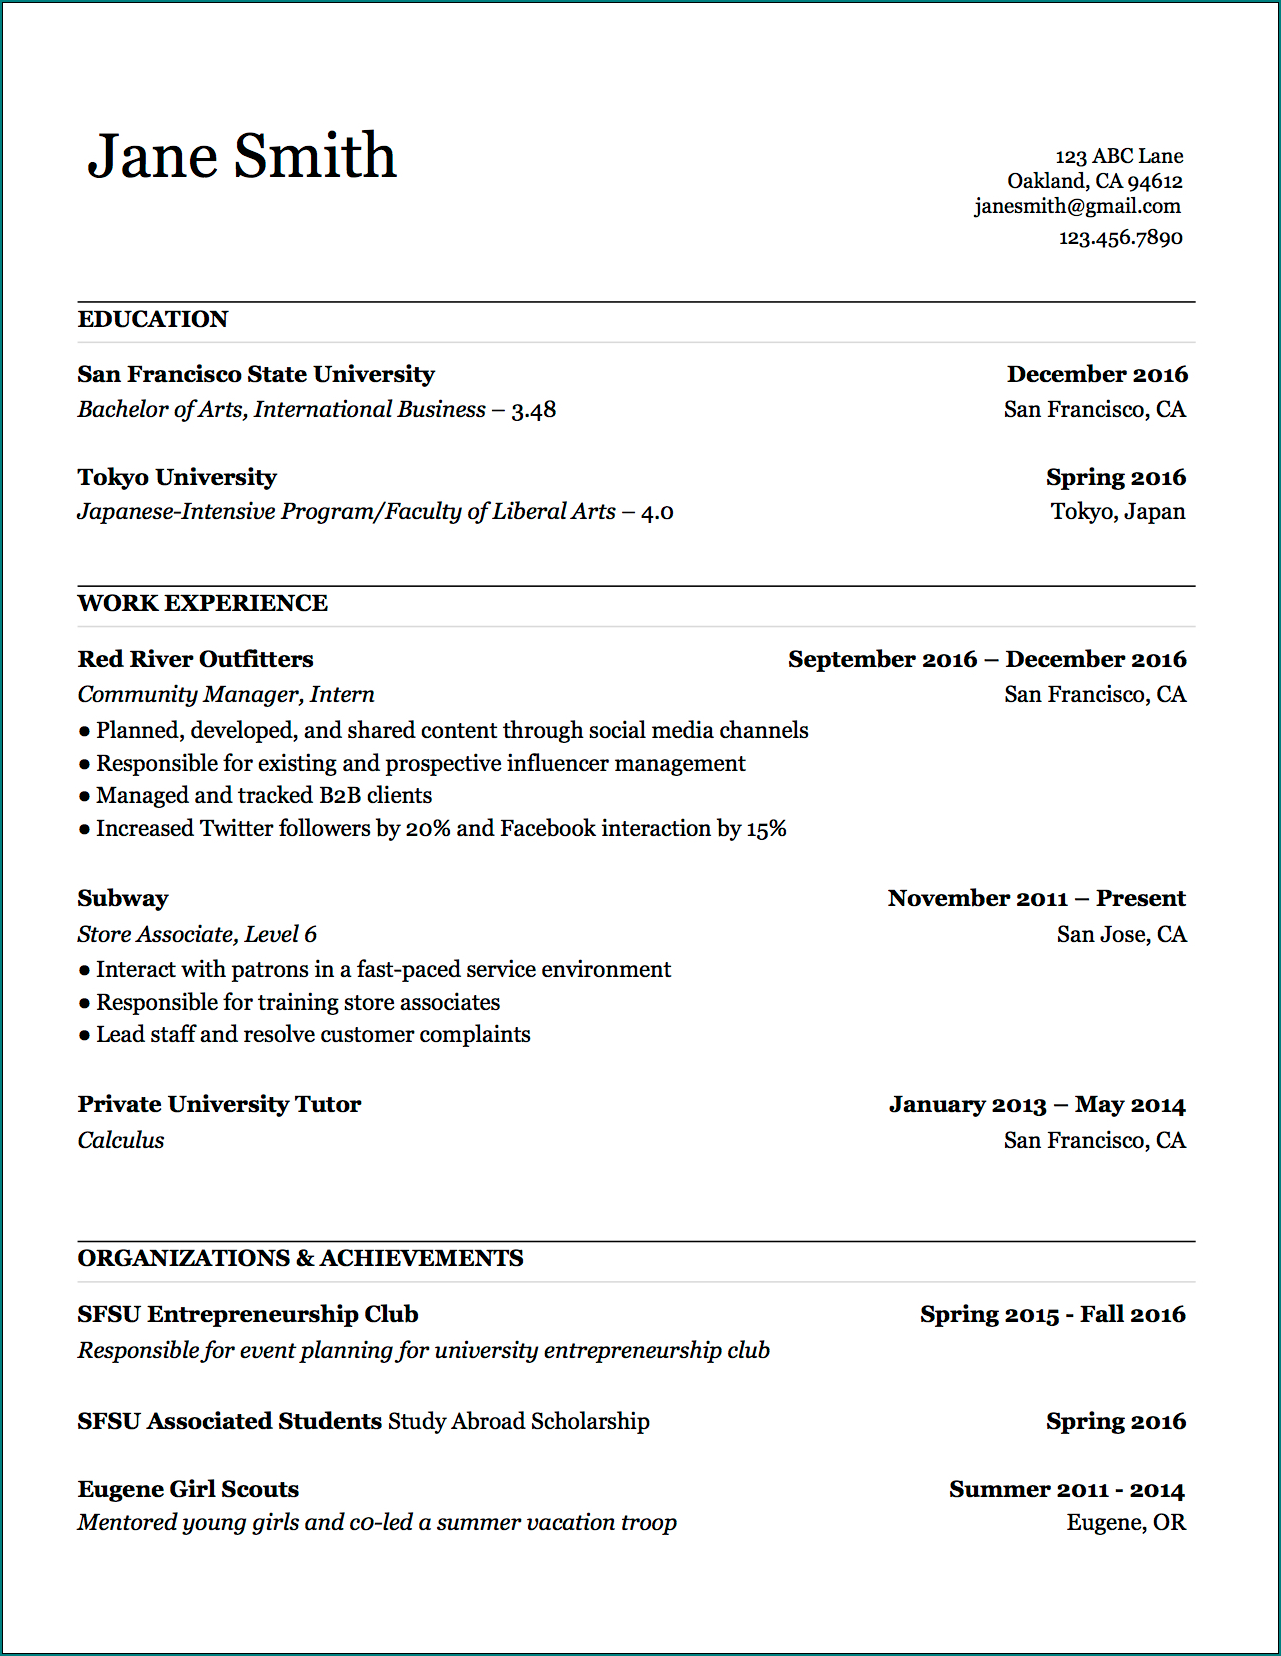 Example of Basic Resume Template